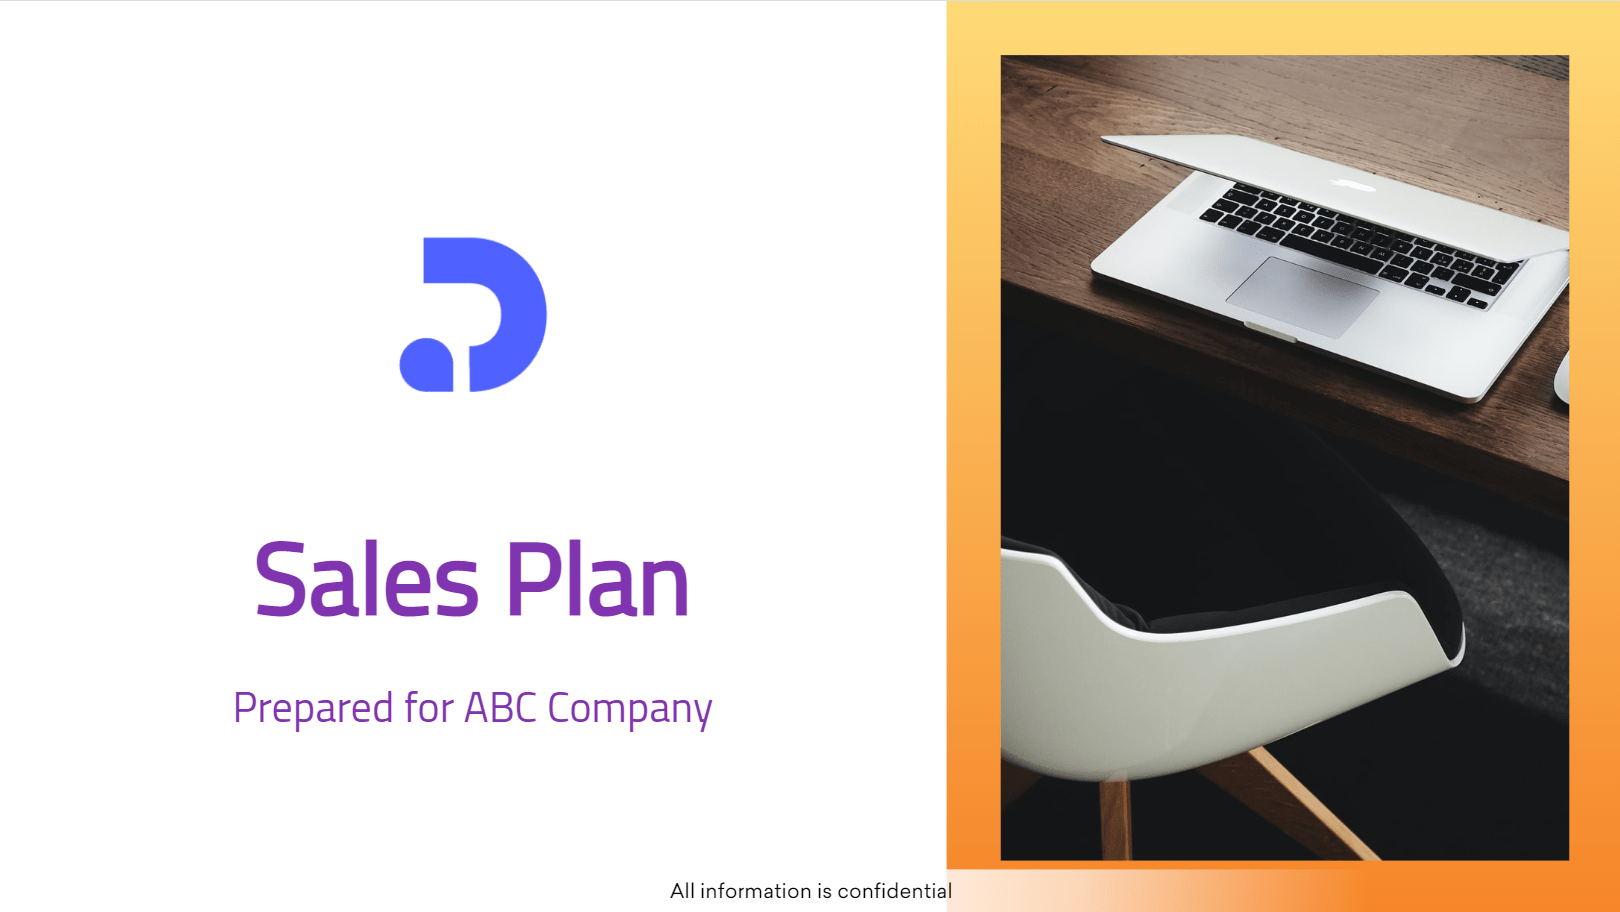 This sales plan template is designed for salespeople or small business owners to create a good-looking and solid sales offer&plan to their employees. If you are looking for a professional-looking template to go to your clients, this template is your start point. Click on use this template and start editing today. It must take less than 15 minutes.